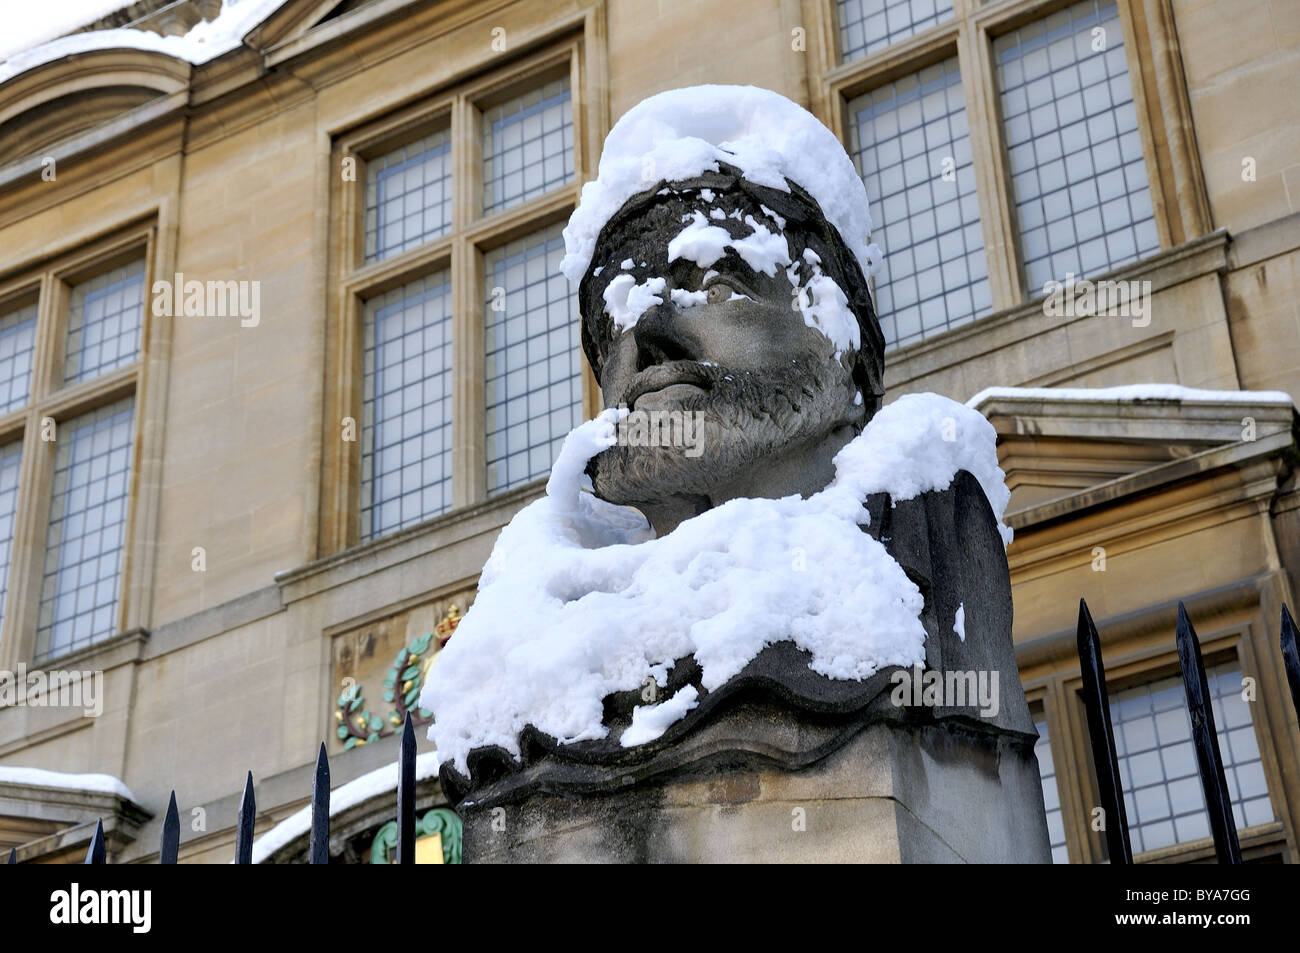 Snow covered statue outside Museum of the History of Science, Oxford, UK - Stock Image